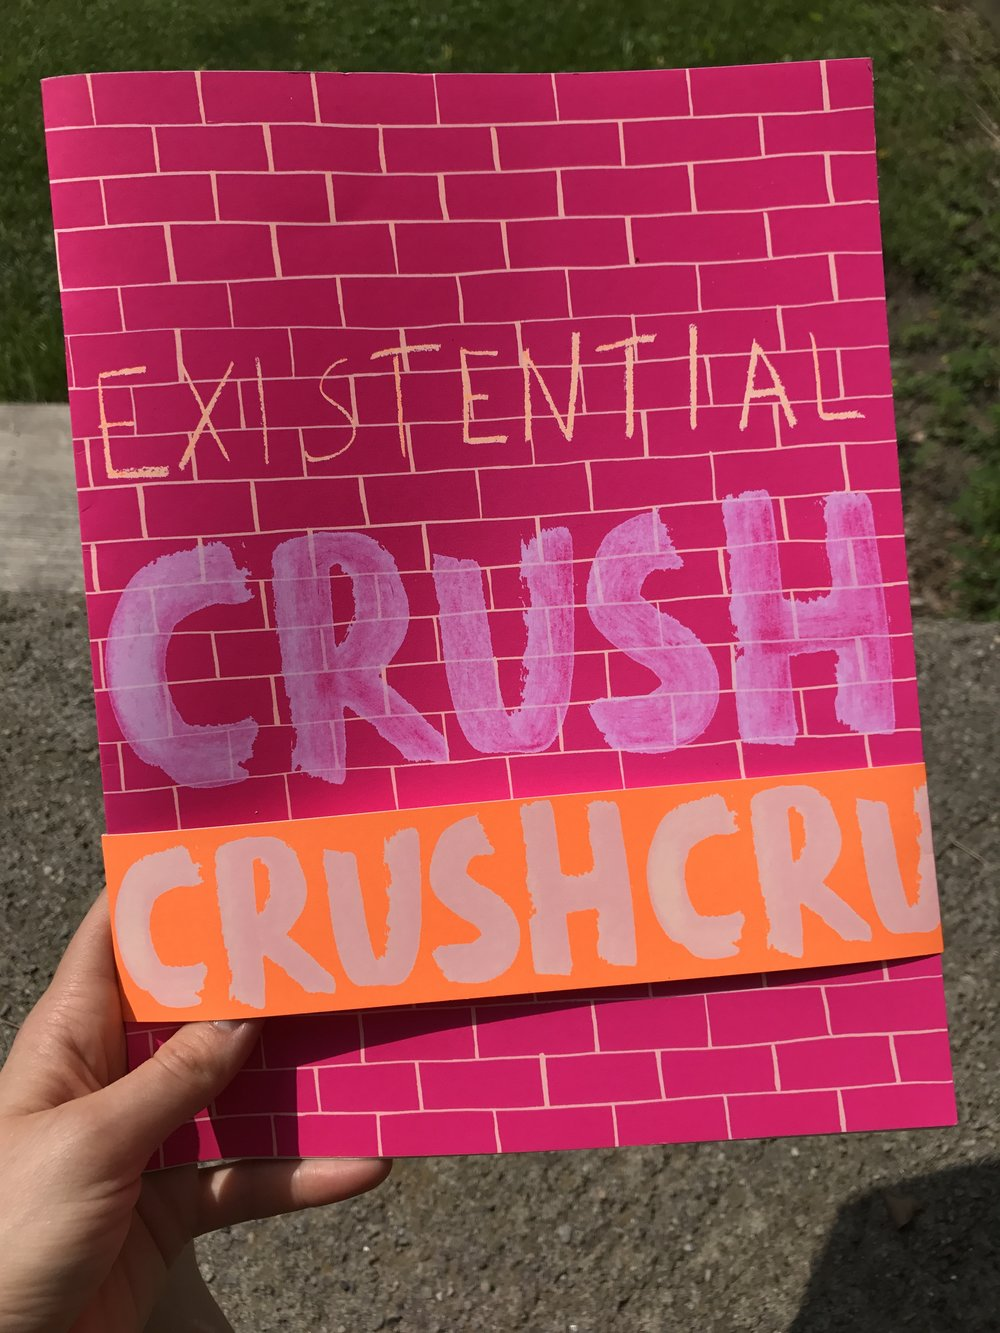 EXISTENTIAL CRUSH,